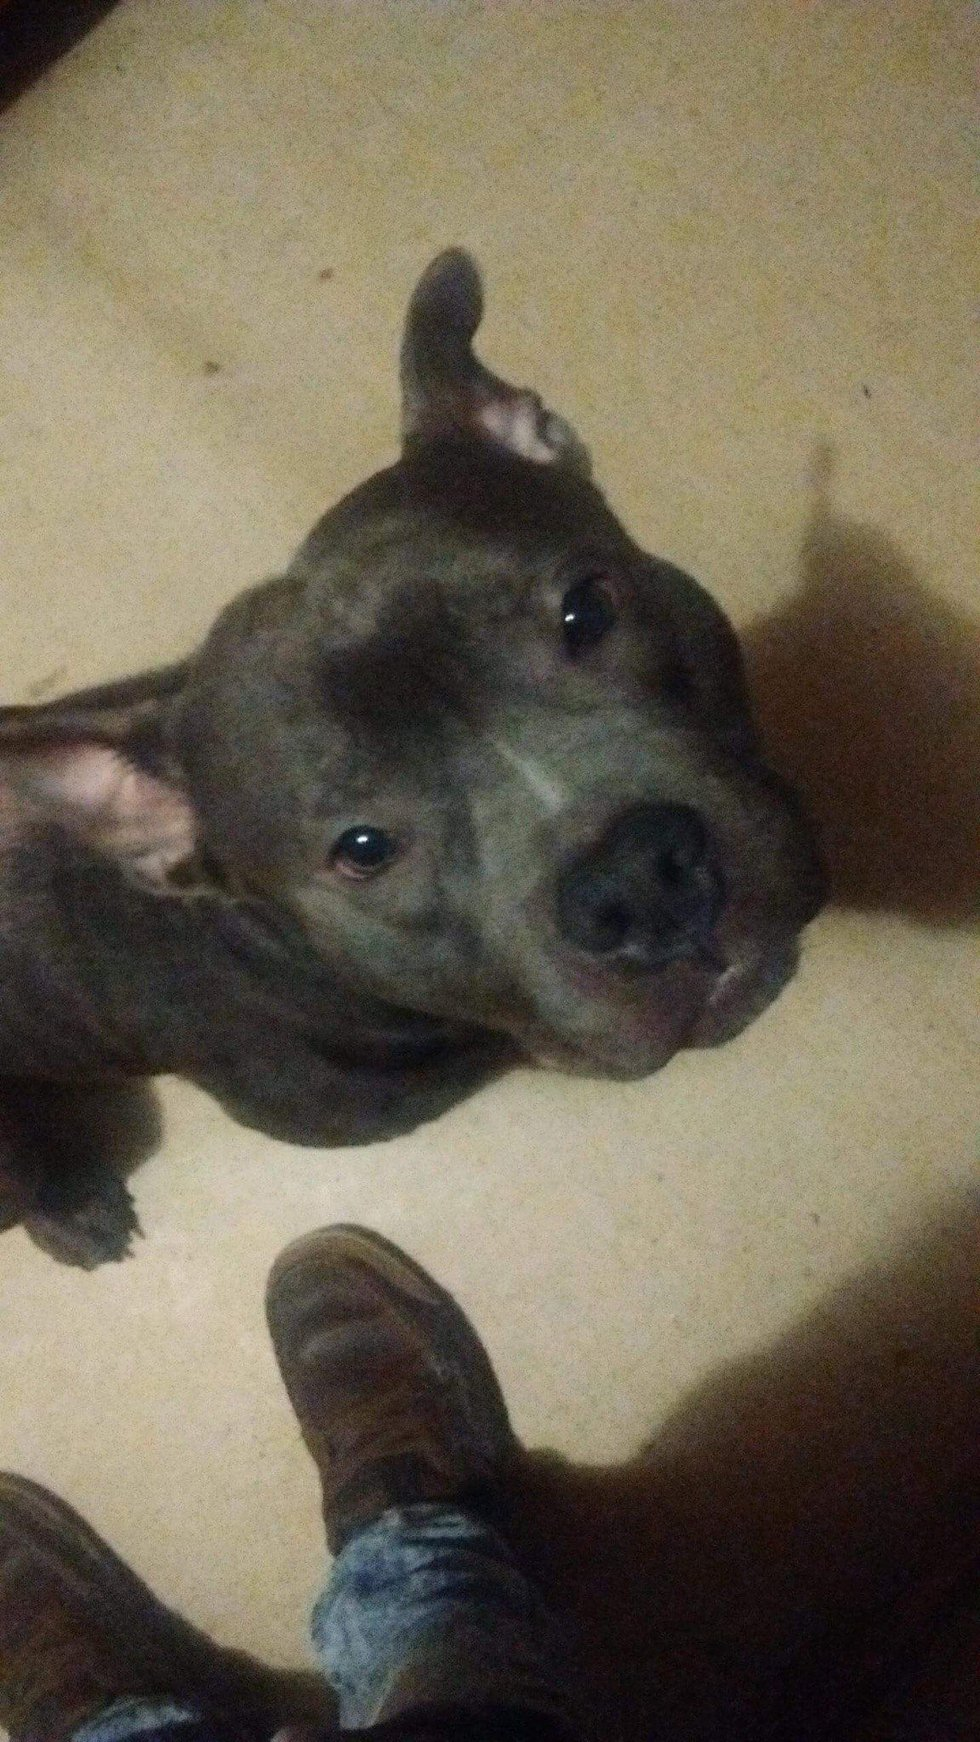 The dog which attacked Rylee, Remington, was killed at the home by Duncan Police after they...